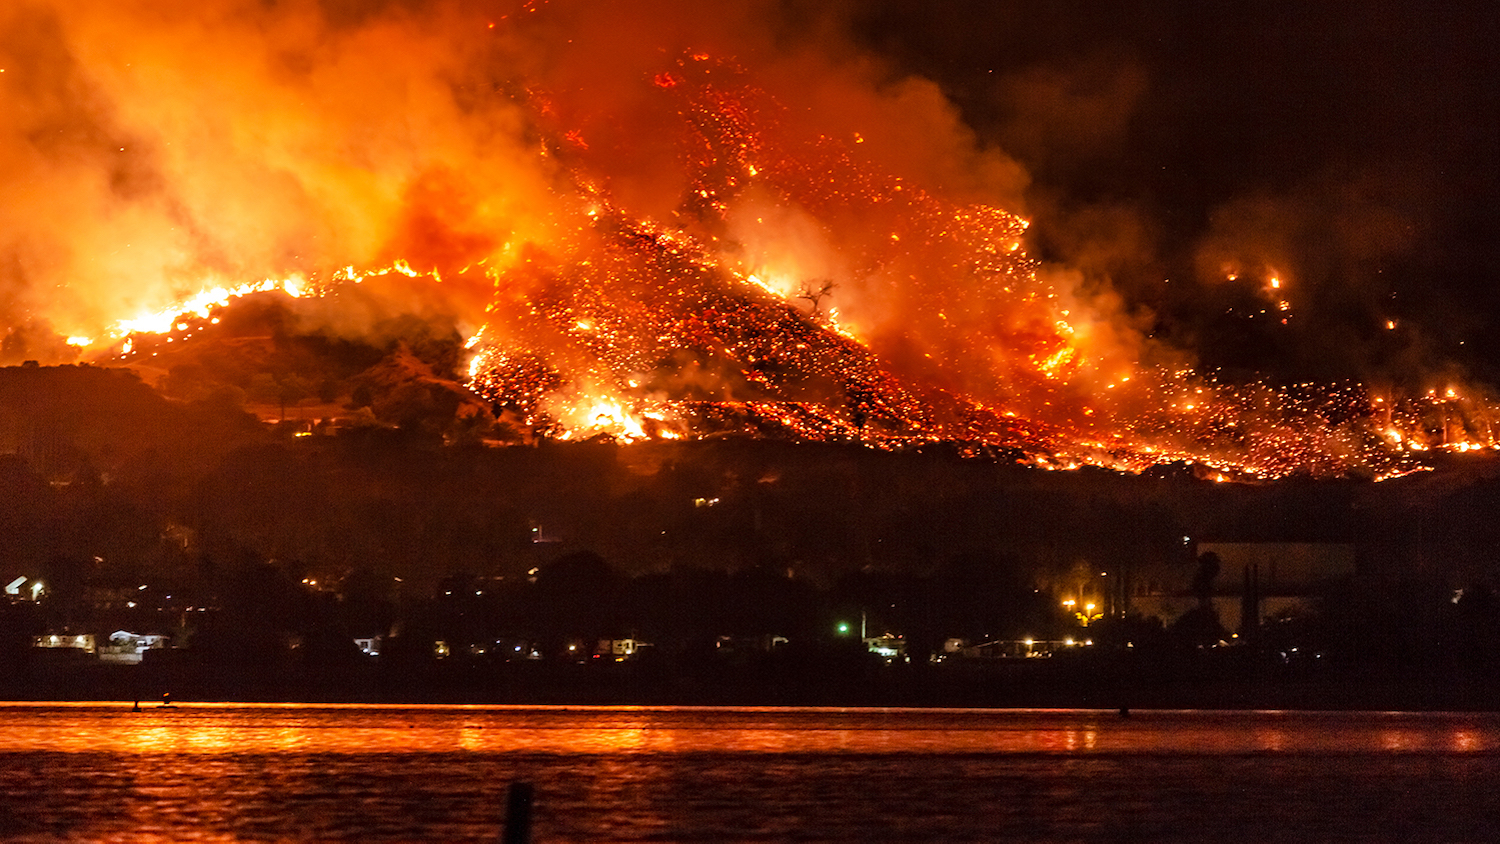 A wildfire burns near a lake in California.